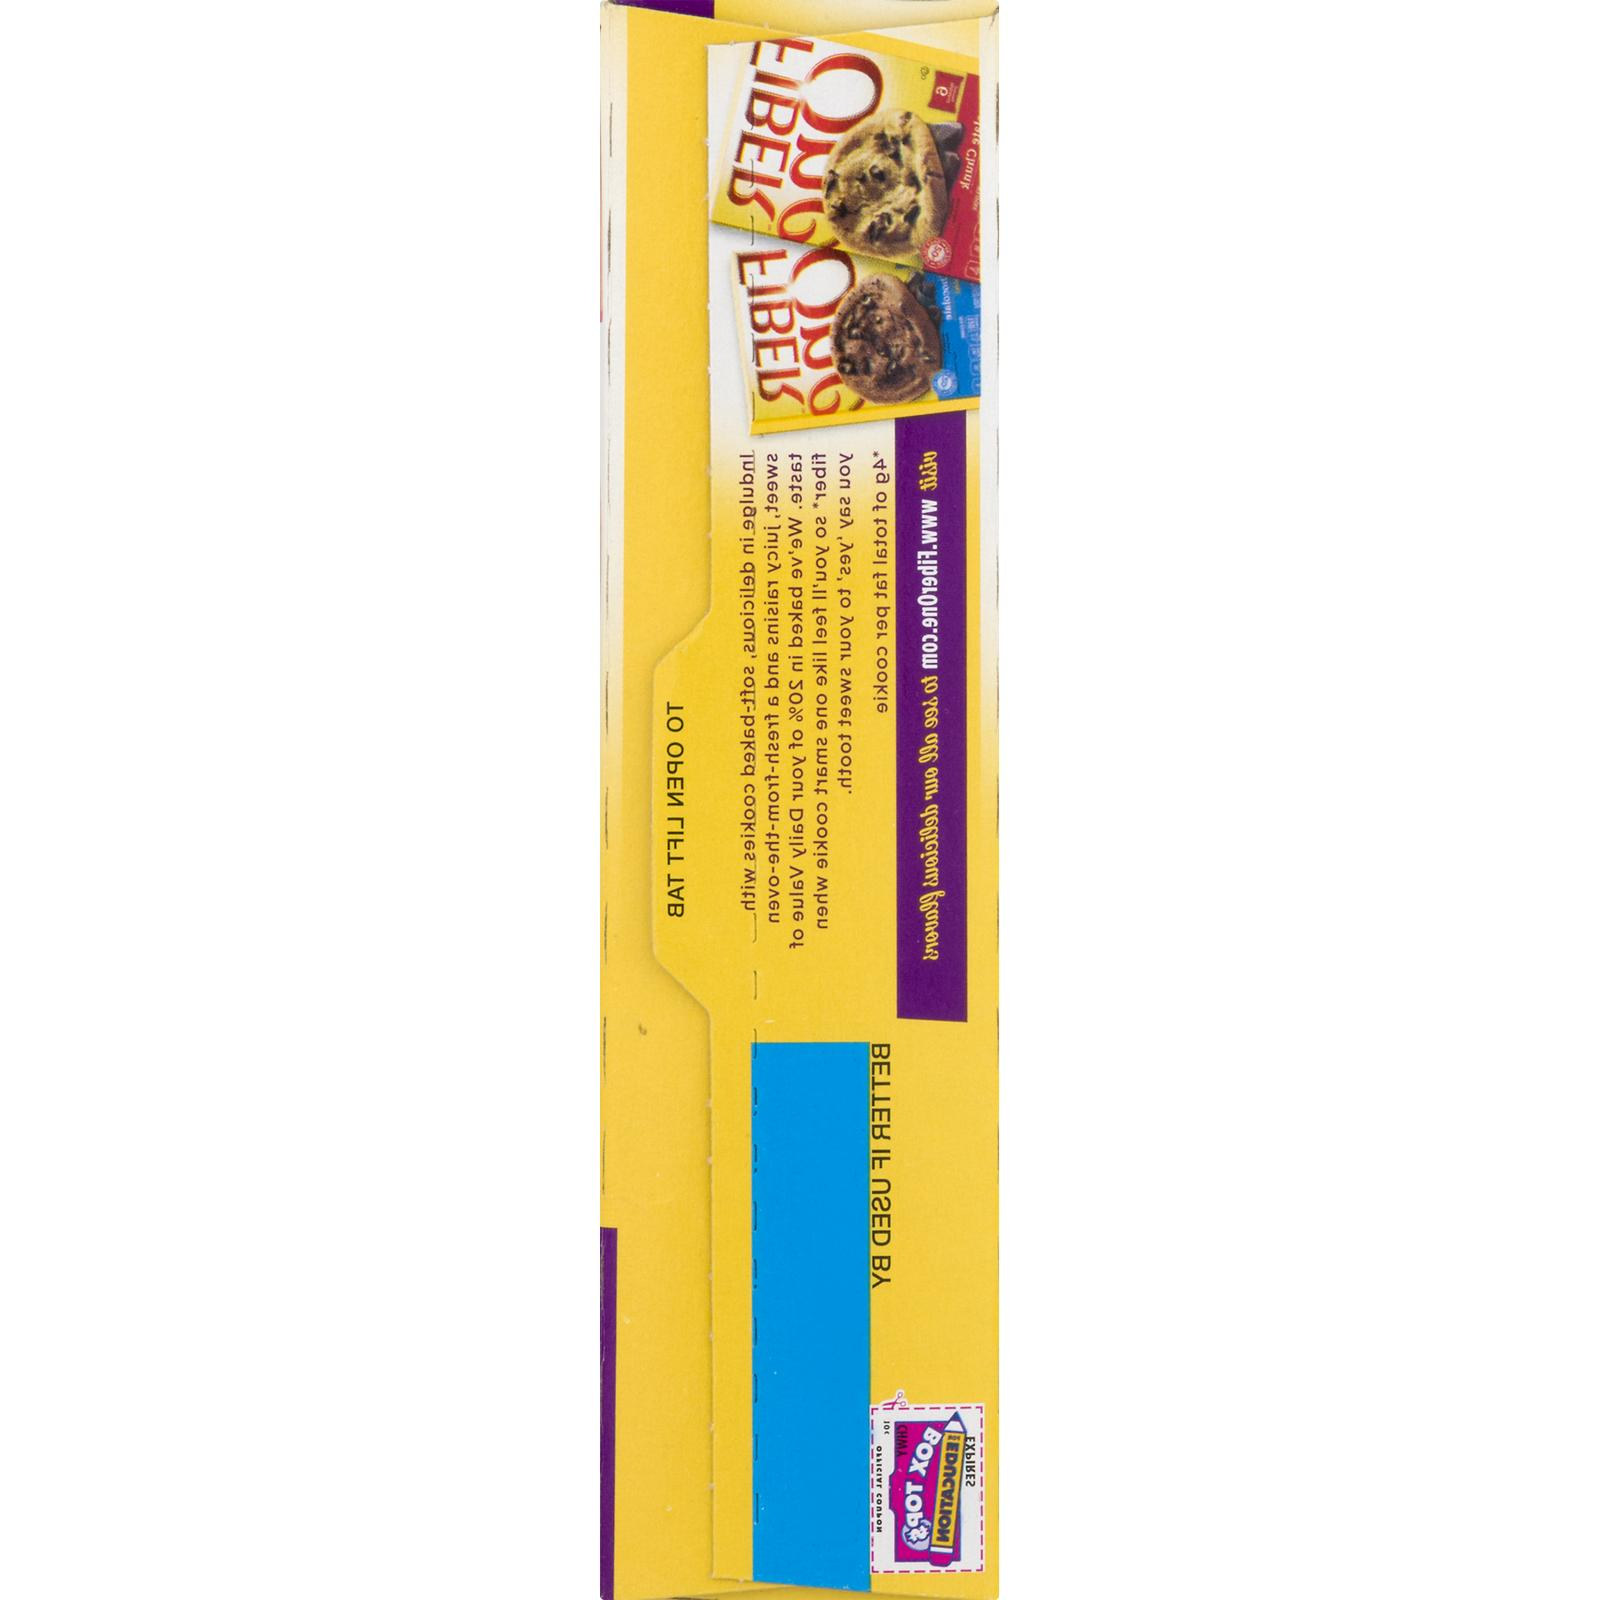 6 Boxs - Fiber One Oatmeal Soft-Baked Cookies, 6 Shipping